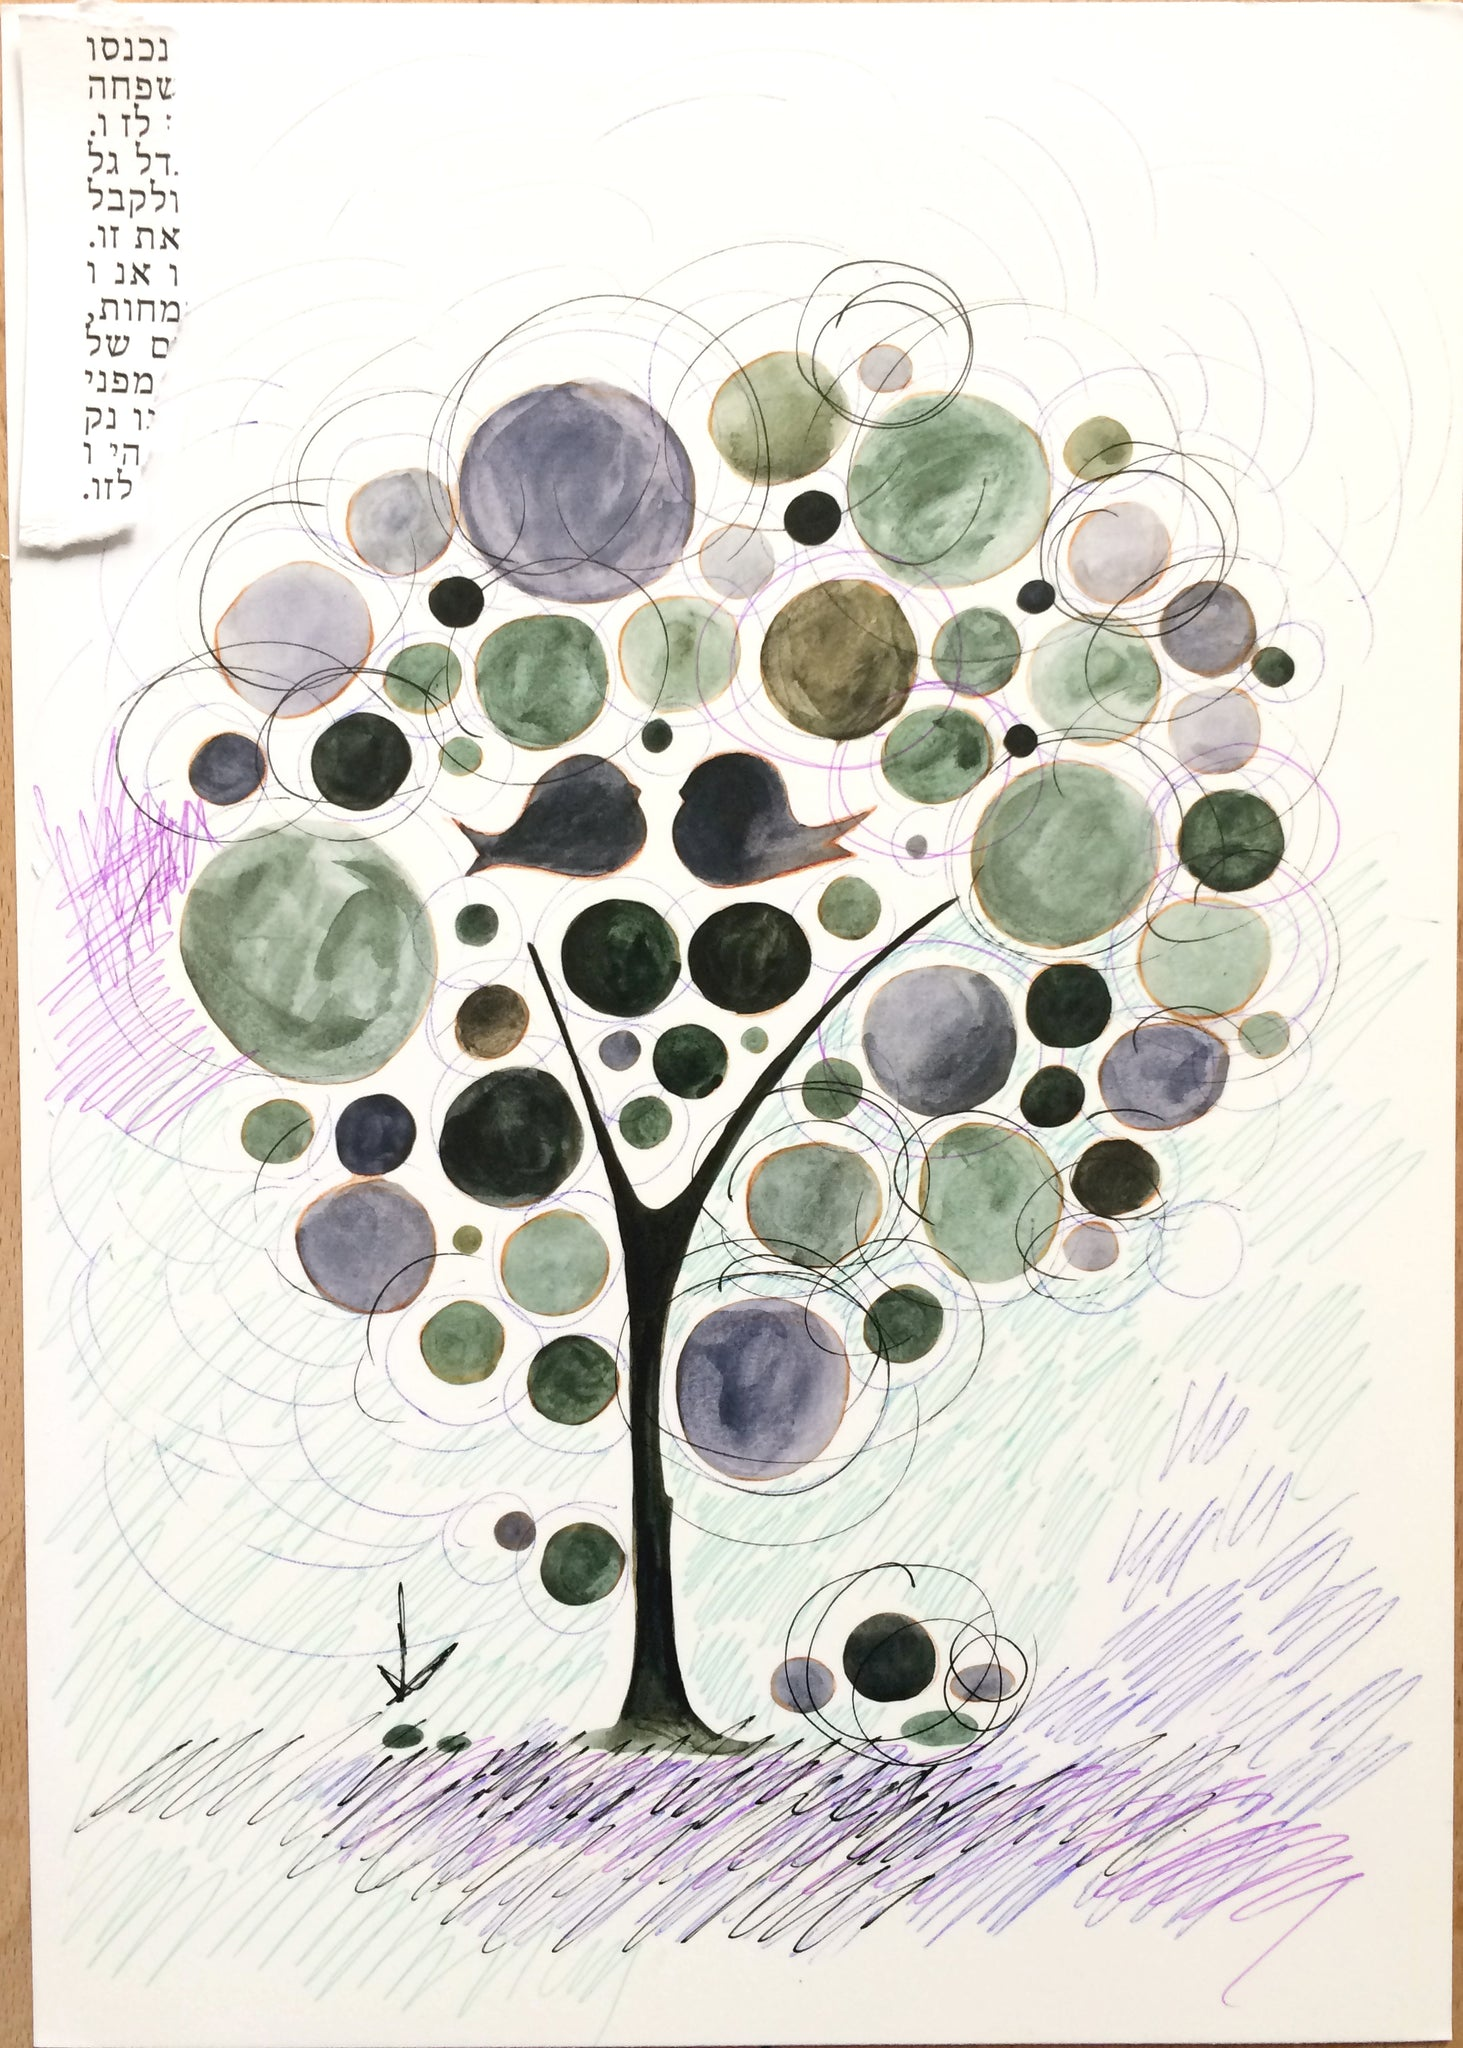 Post eden artworkTree of life with Ketubah torn piece